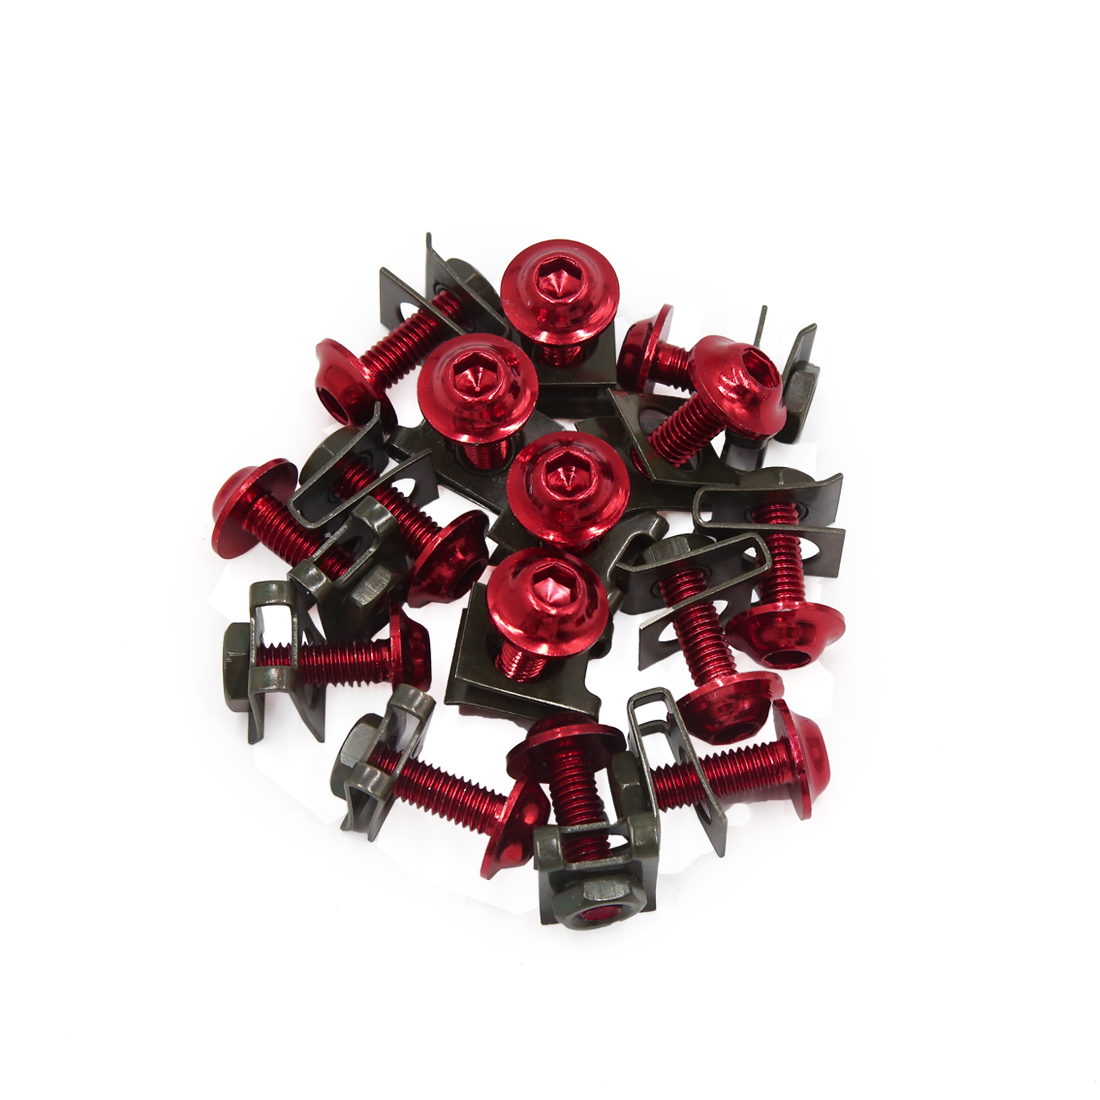 15 Pcs Red Black Motorcycle Hexagon Bolts Hex Trad Screws w Metal Holder